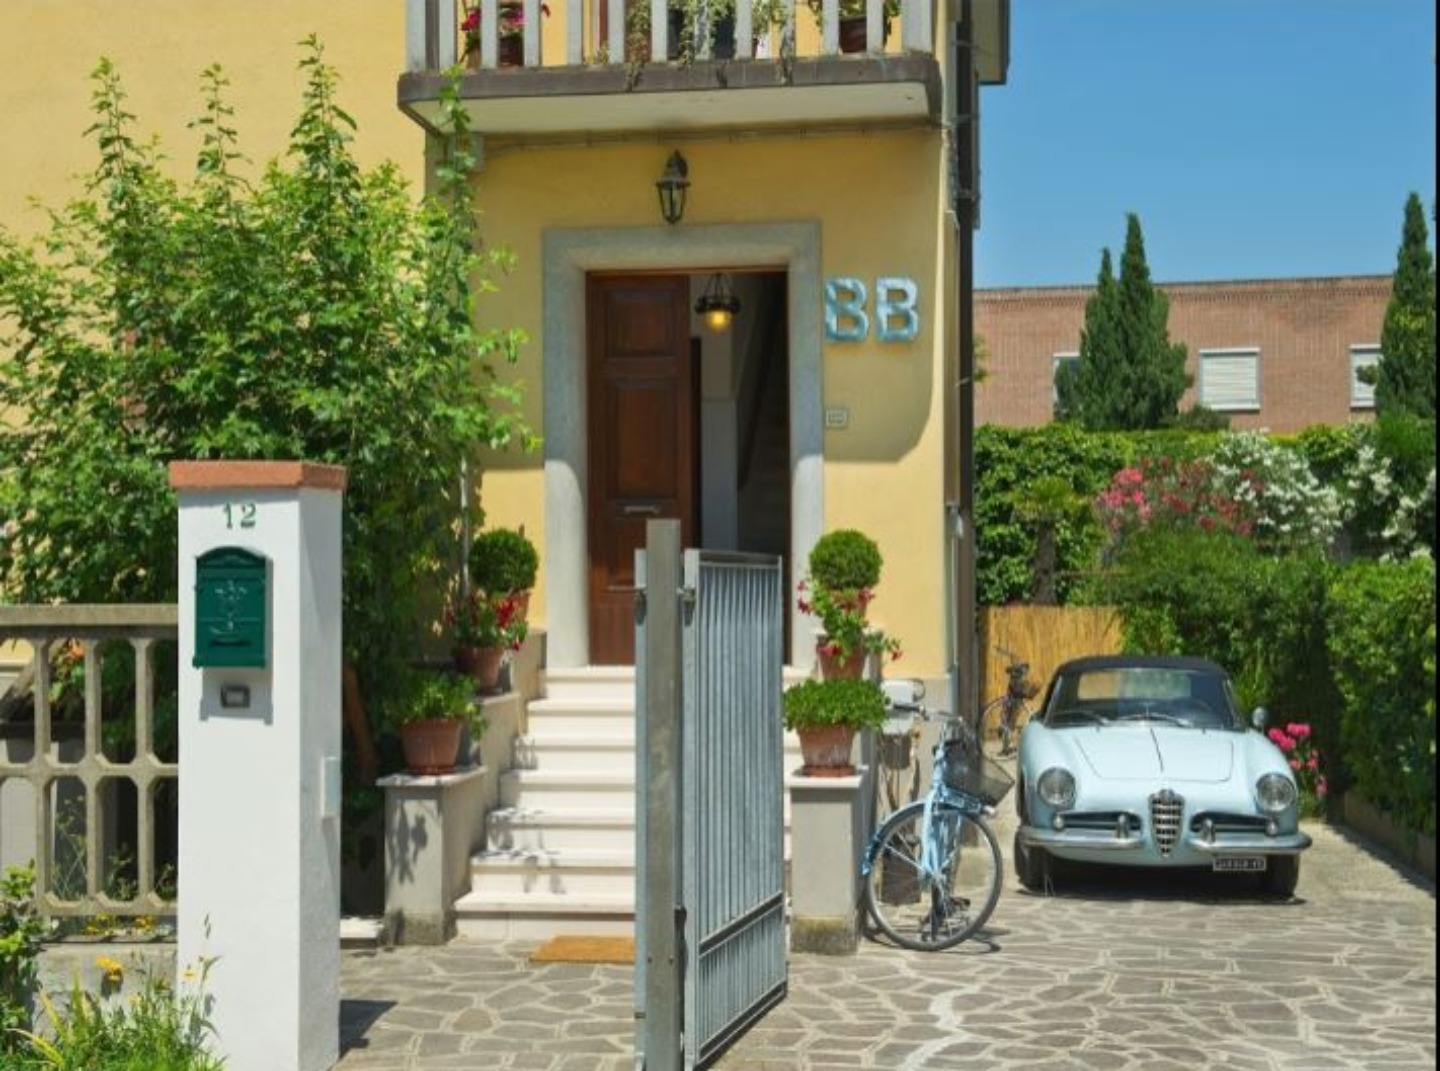 A car parked on the side of a building at B&B Casa Robinig.